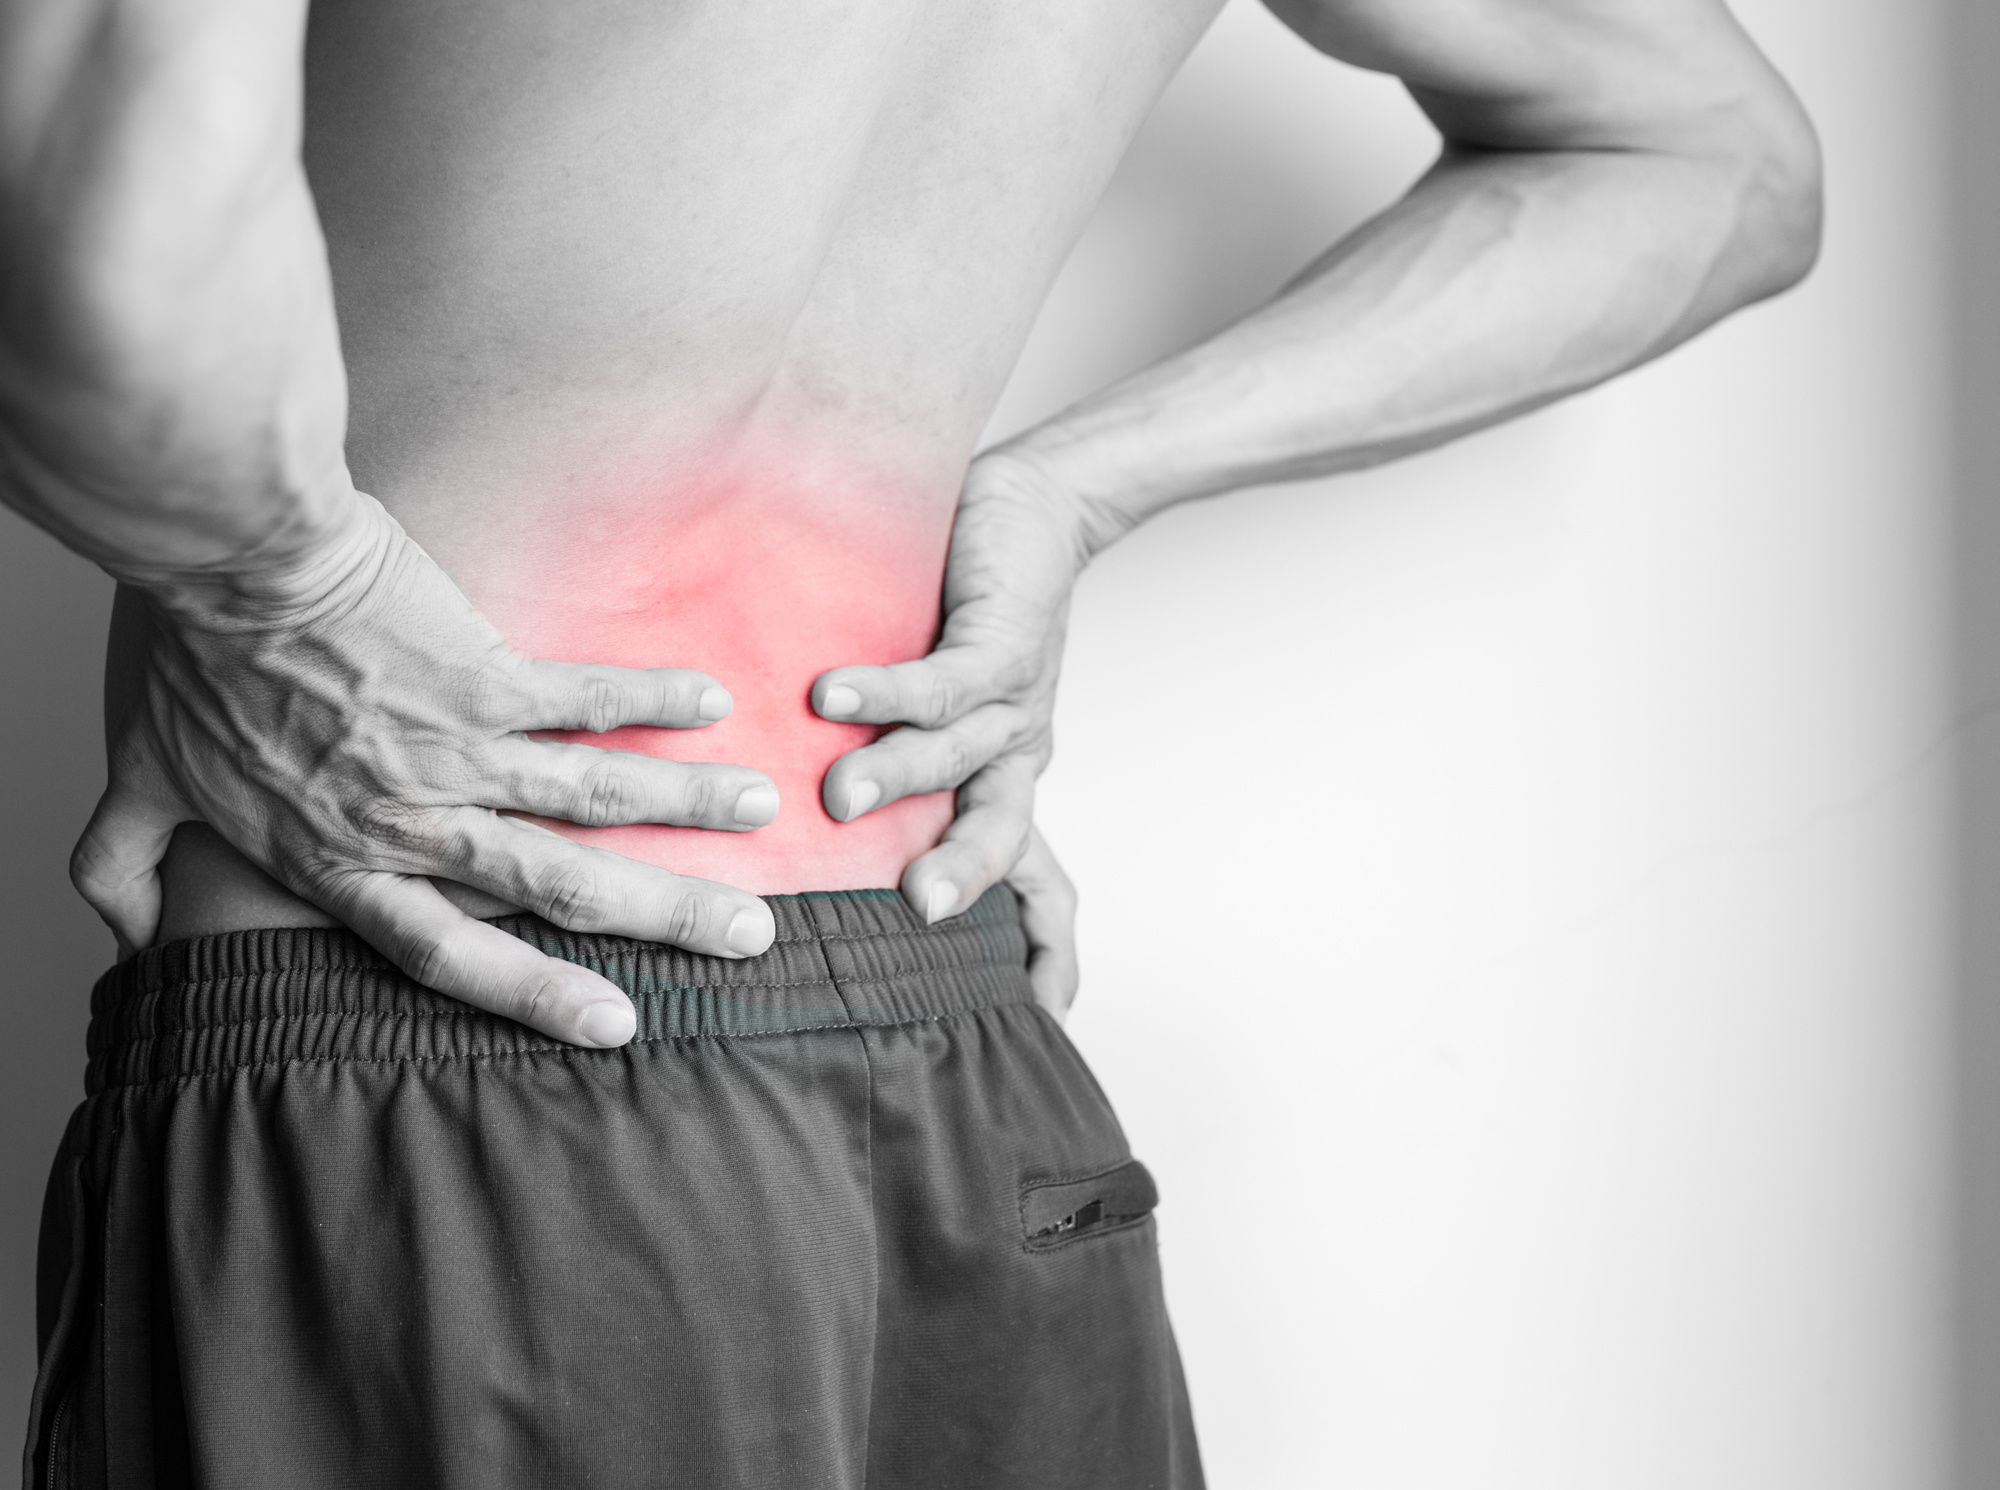 10 Reasons to Consider Chiropractic Spinal Treatment